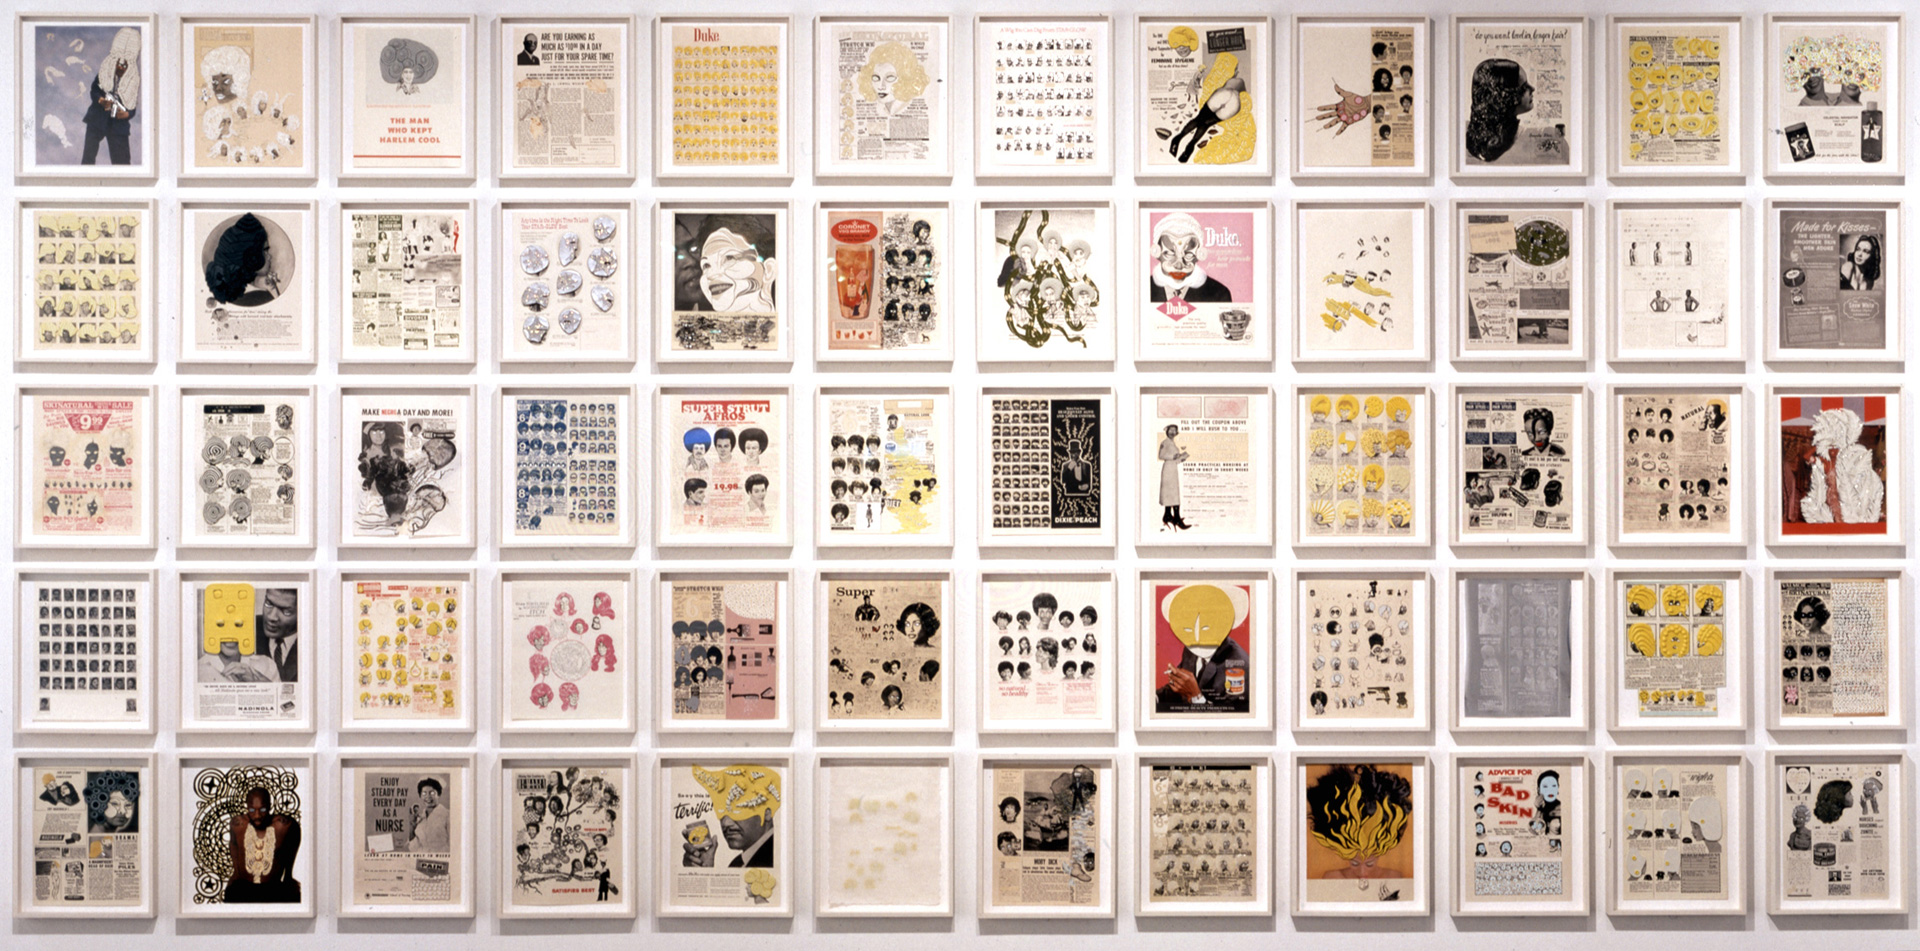 Ellen Gallagher - DeLuxe, 2004-2005, a portfolio of 60 printed objects with aquatint, dry-point, photogravure, spitbite, lithography, silkscreen, embossing, tattoo machine engraving, laser-cutting, collage, crystals, cut paper, enamel, glitter, gold leaf, gouache, graphite, oil, Plasticine